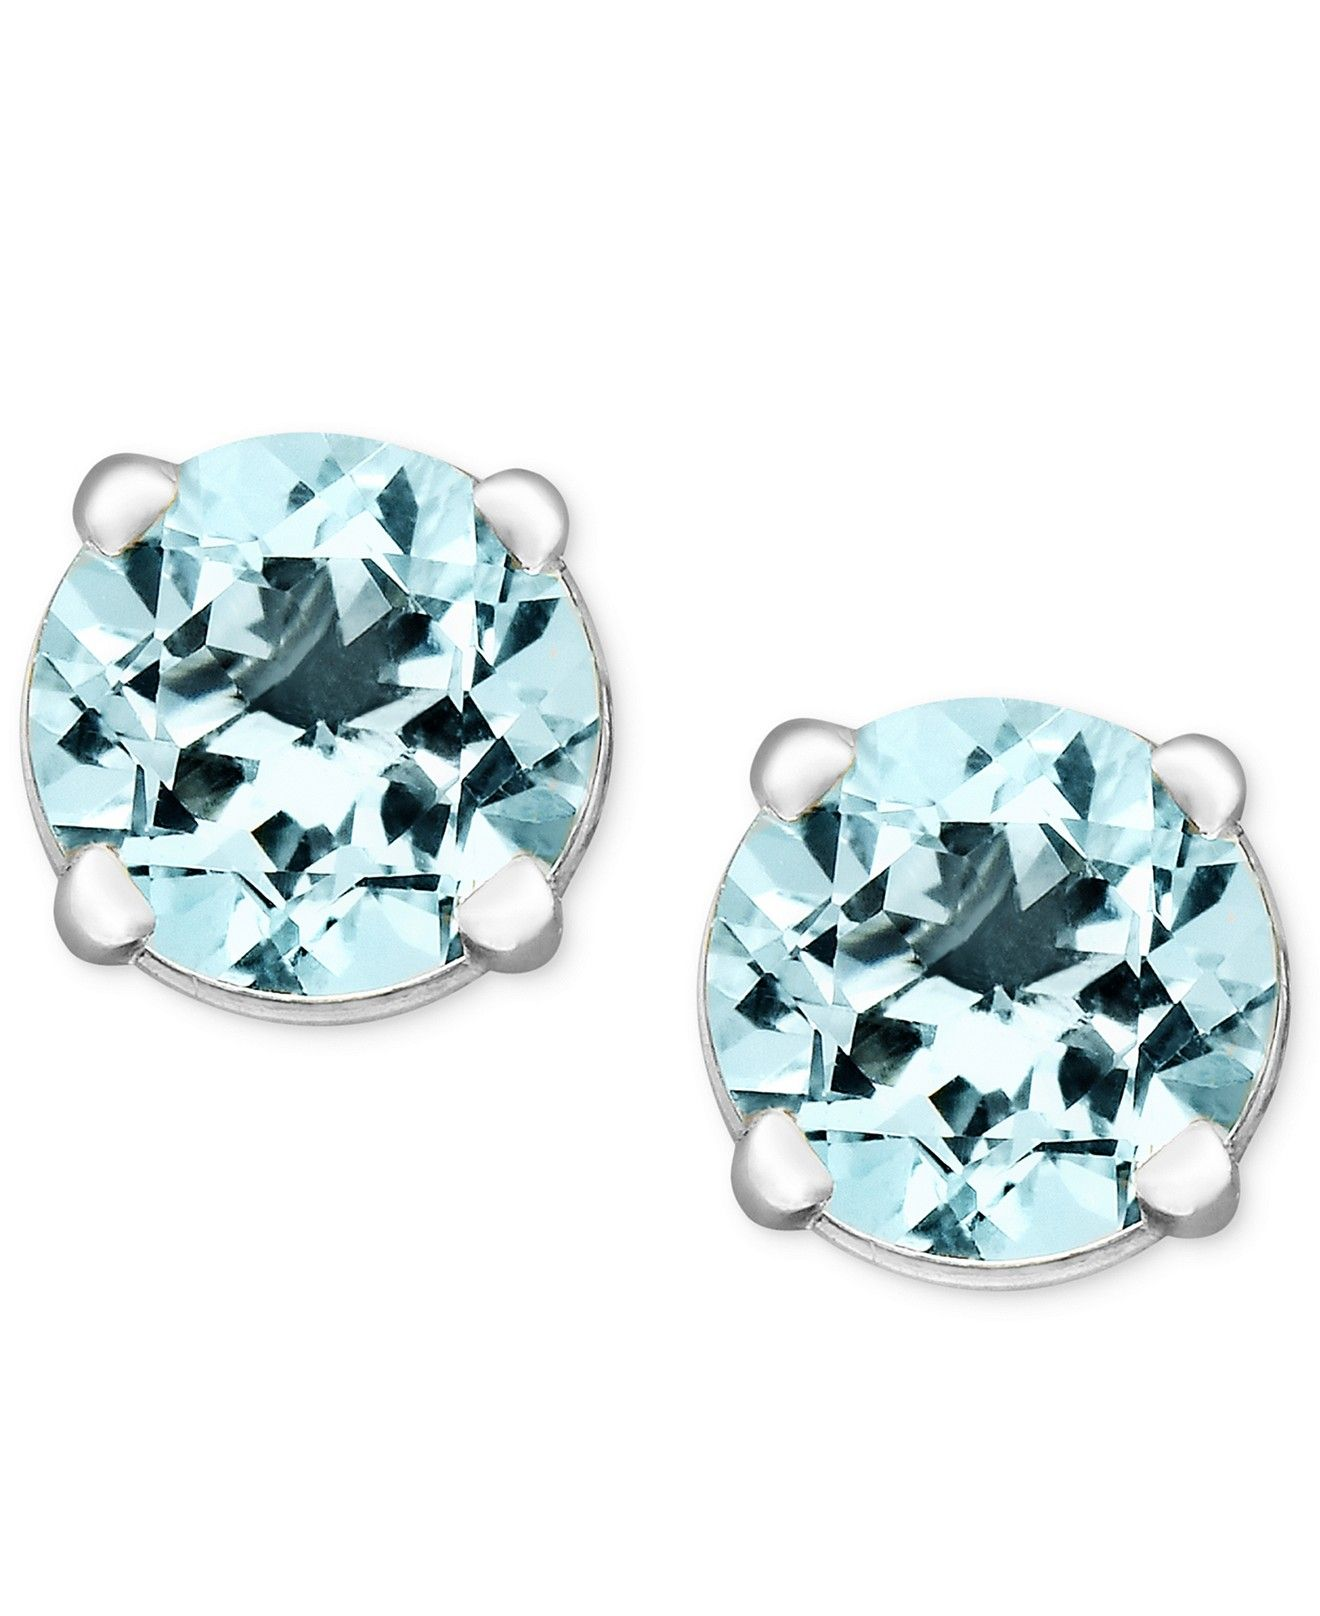 amazon com silver in jewelry earrings sterling aquamarine stud marine set aqua dp tgw